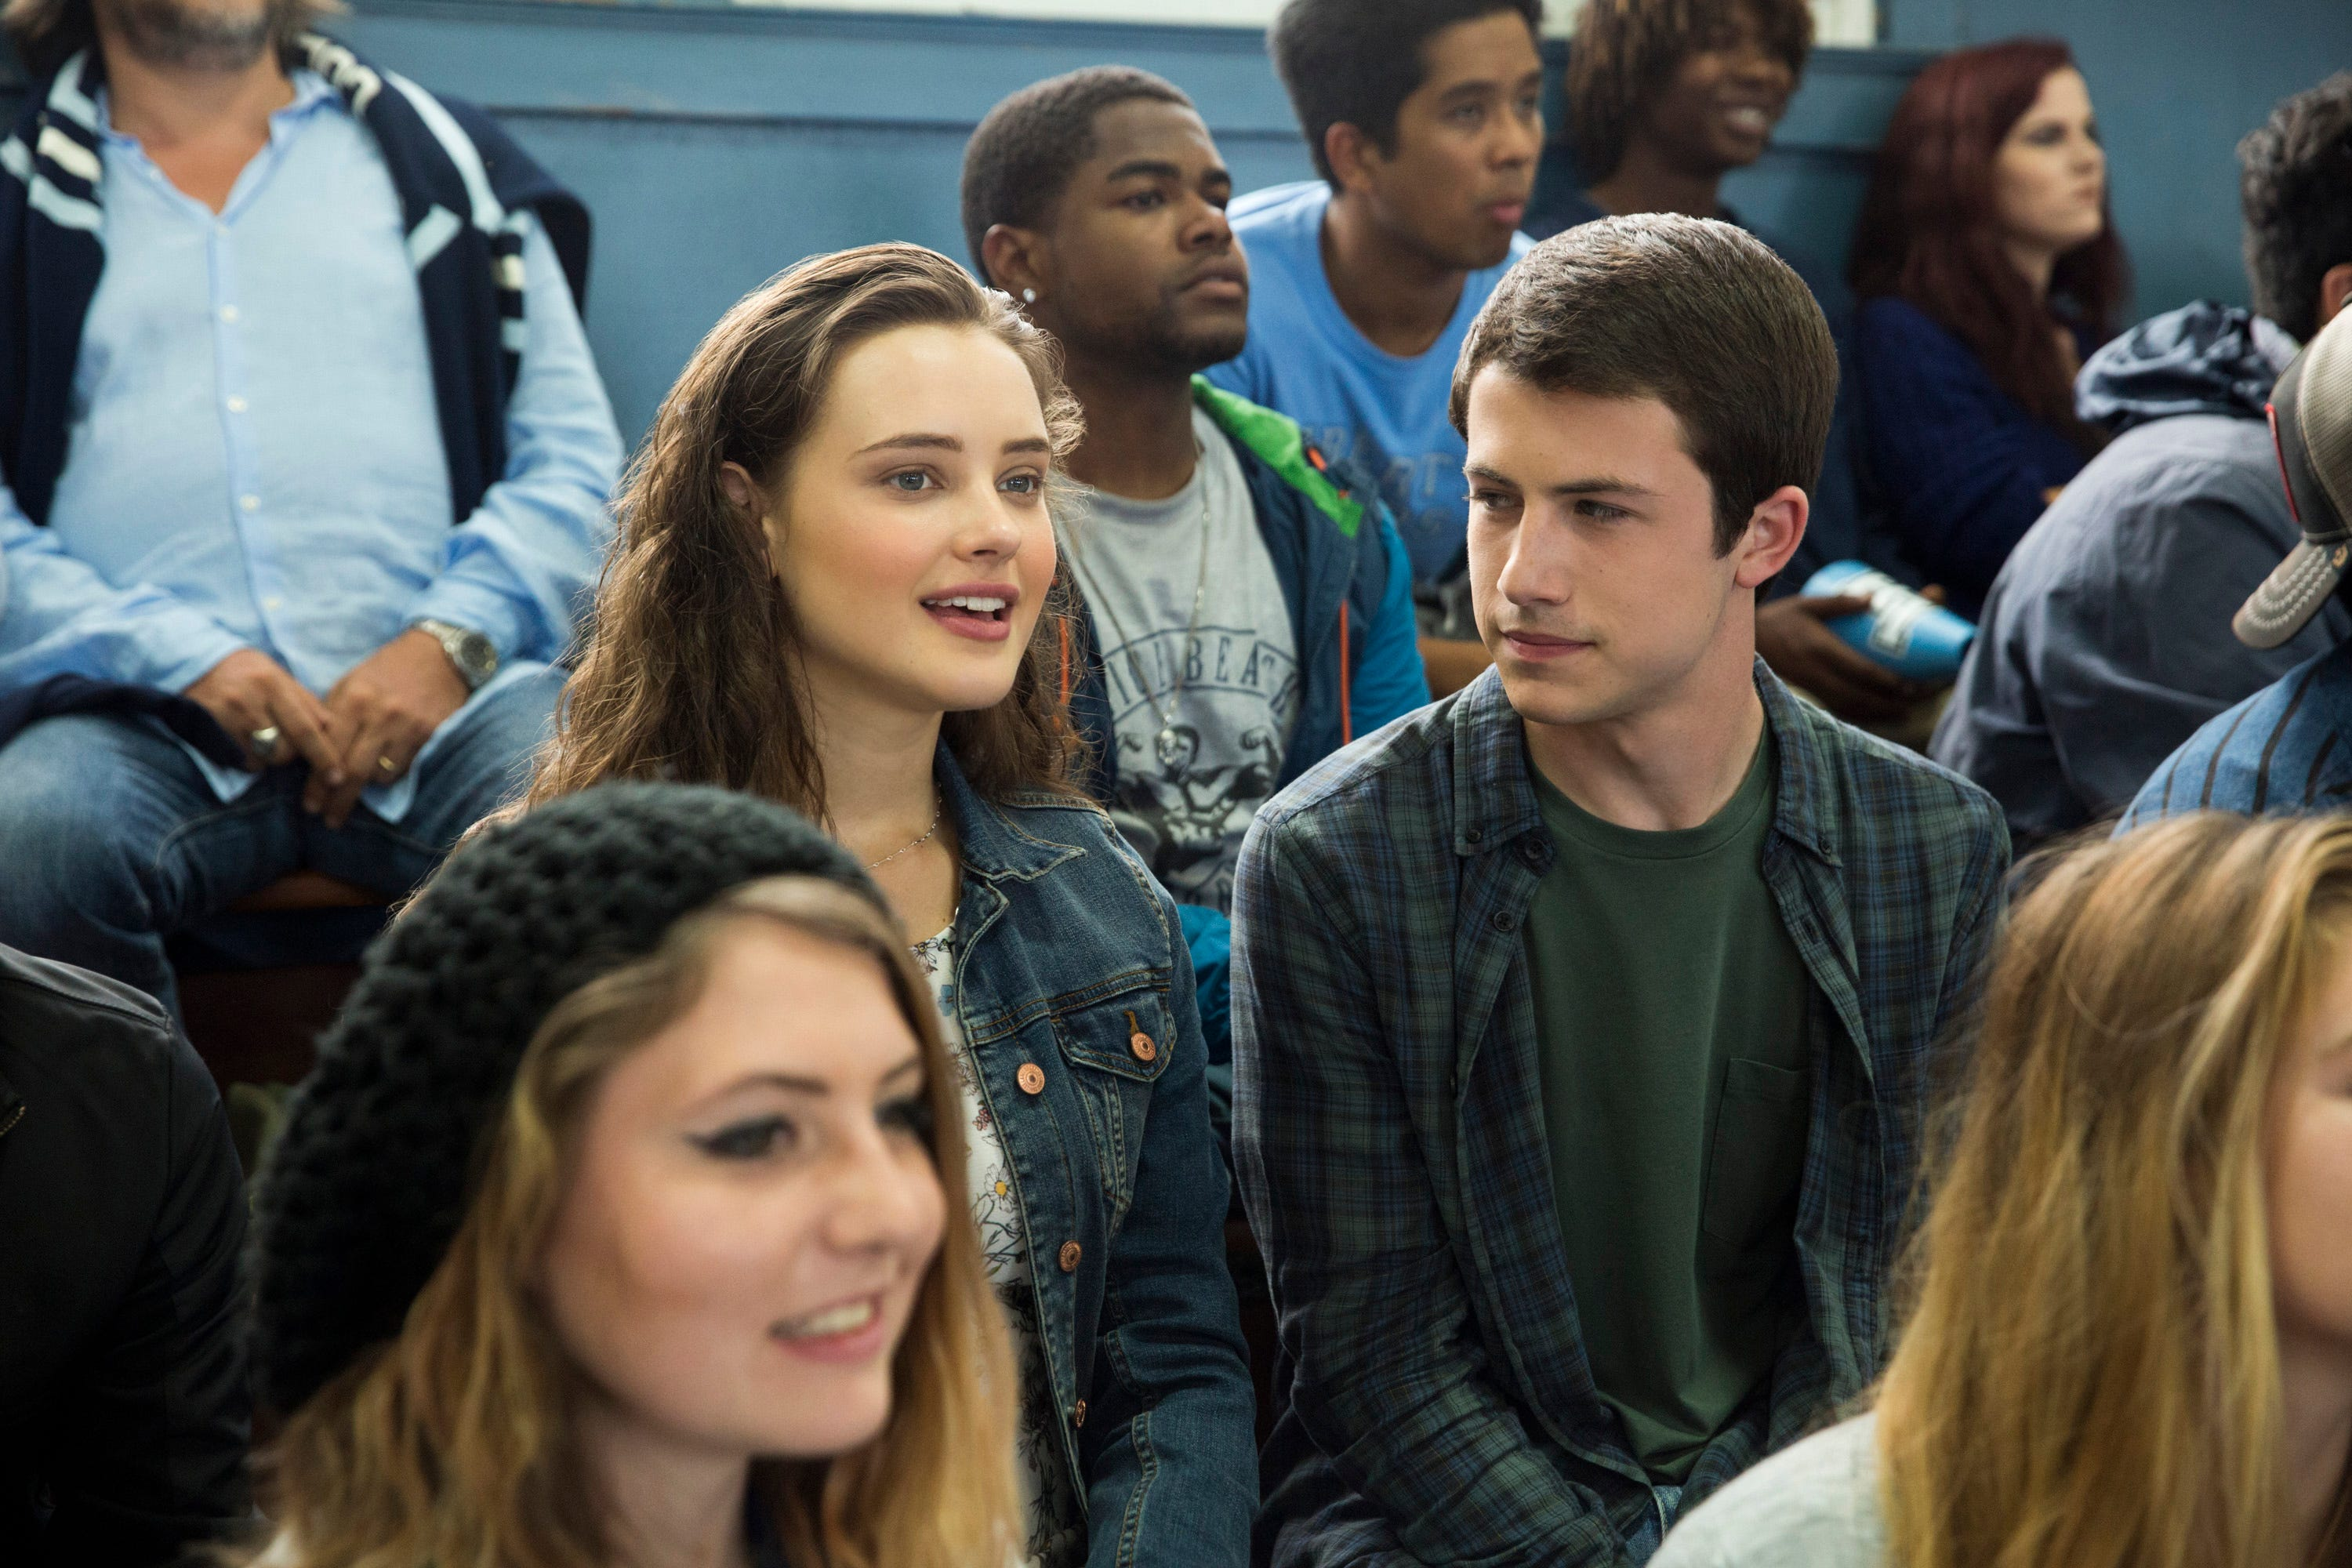 13 Reasons Why Season 2, Details, Episodes